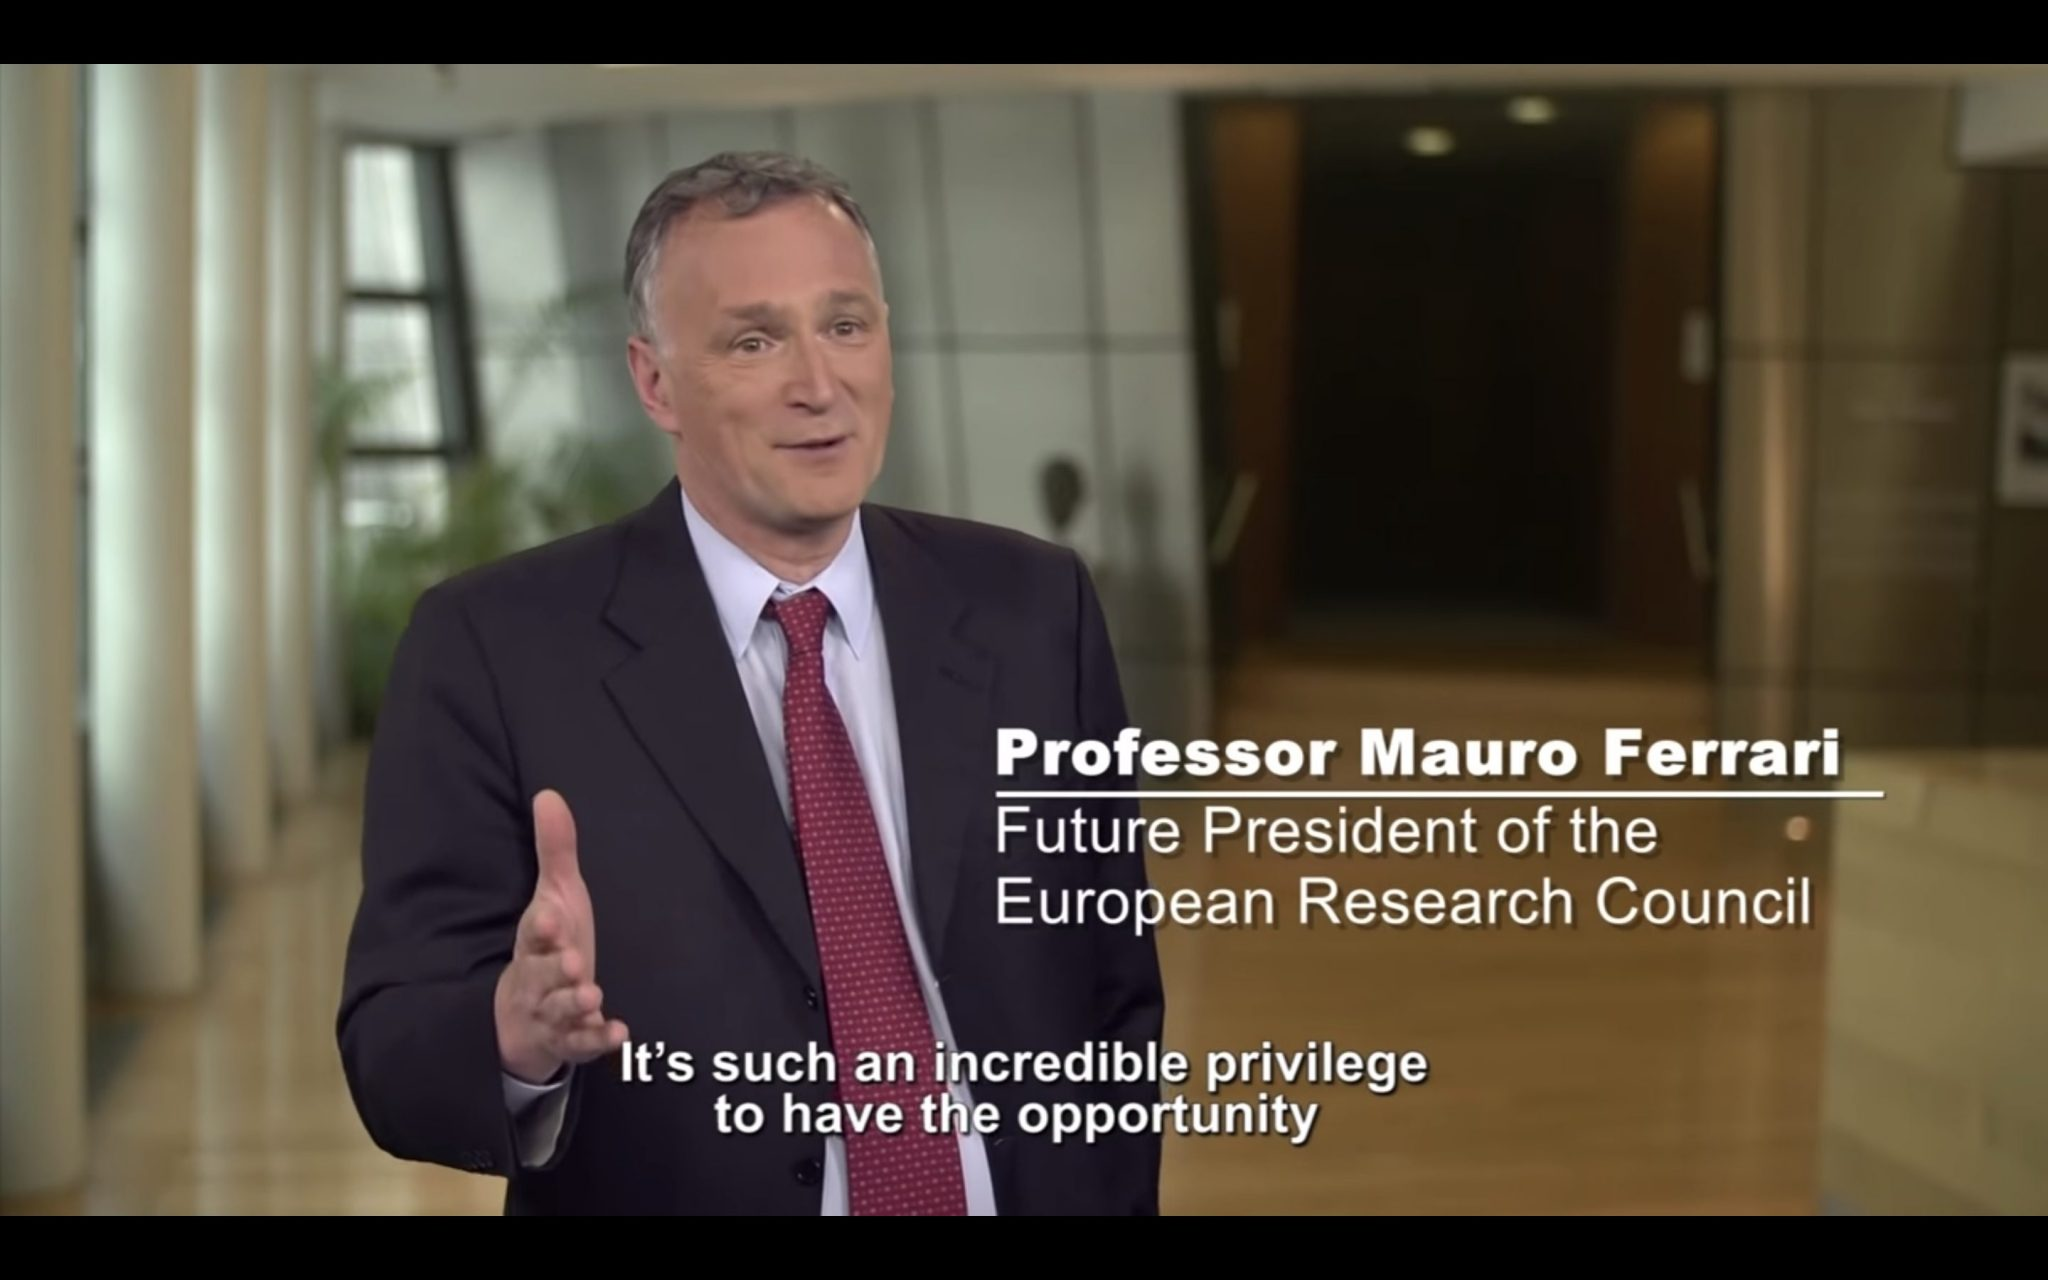 Prof. Mauro Ferrari, pioneer in Nanomedicine, is the future President of E.R.C.